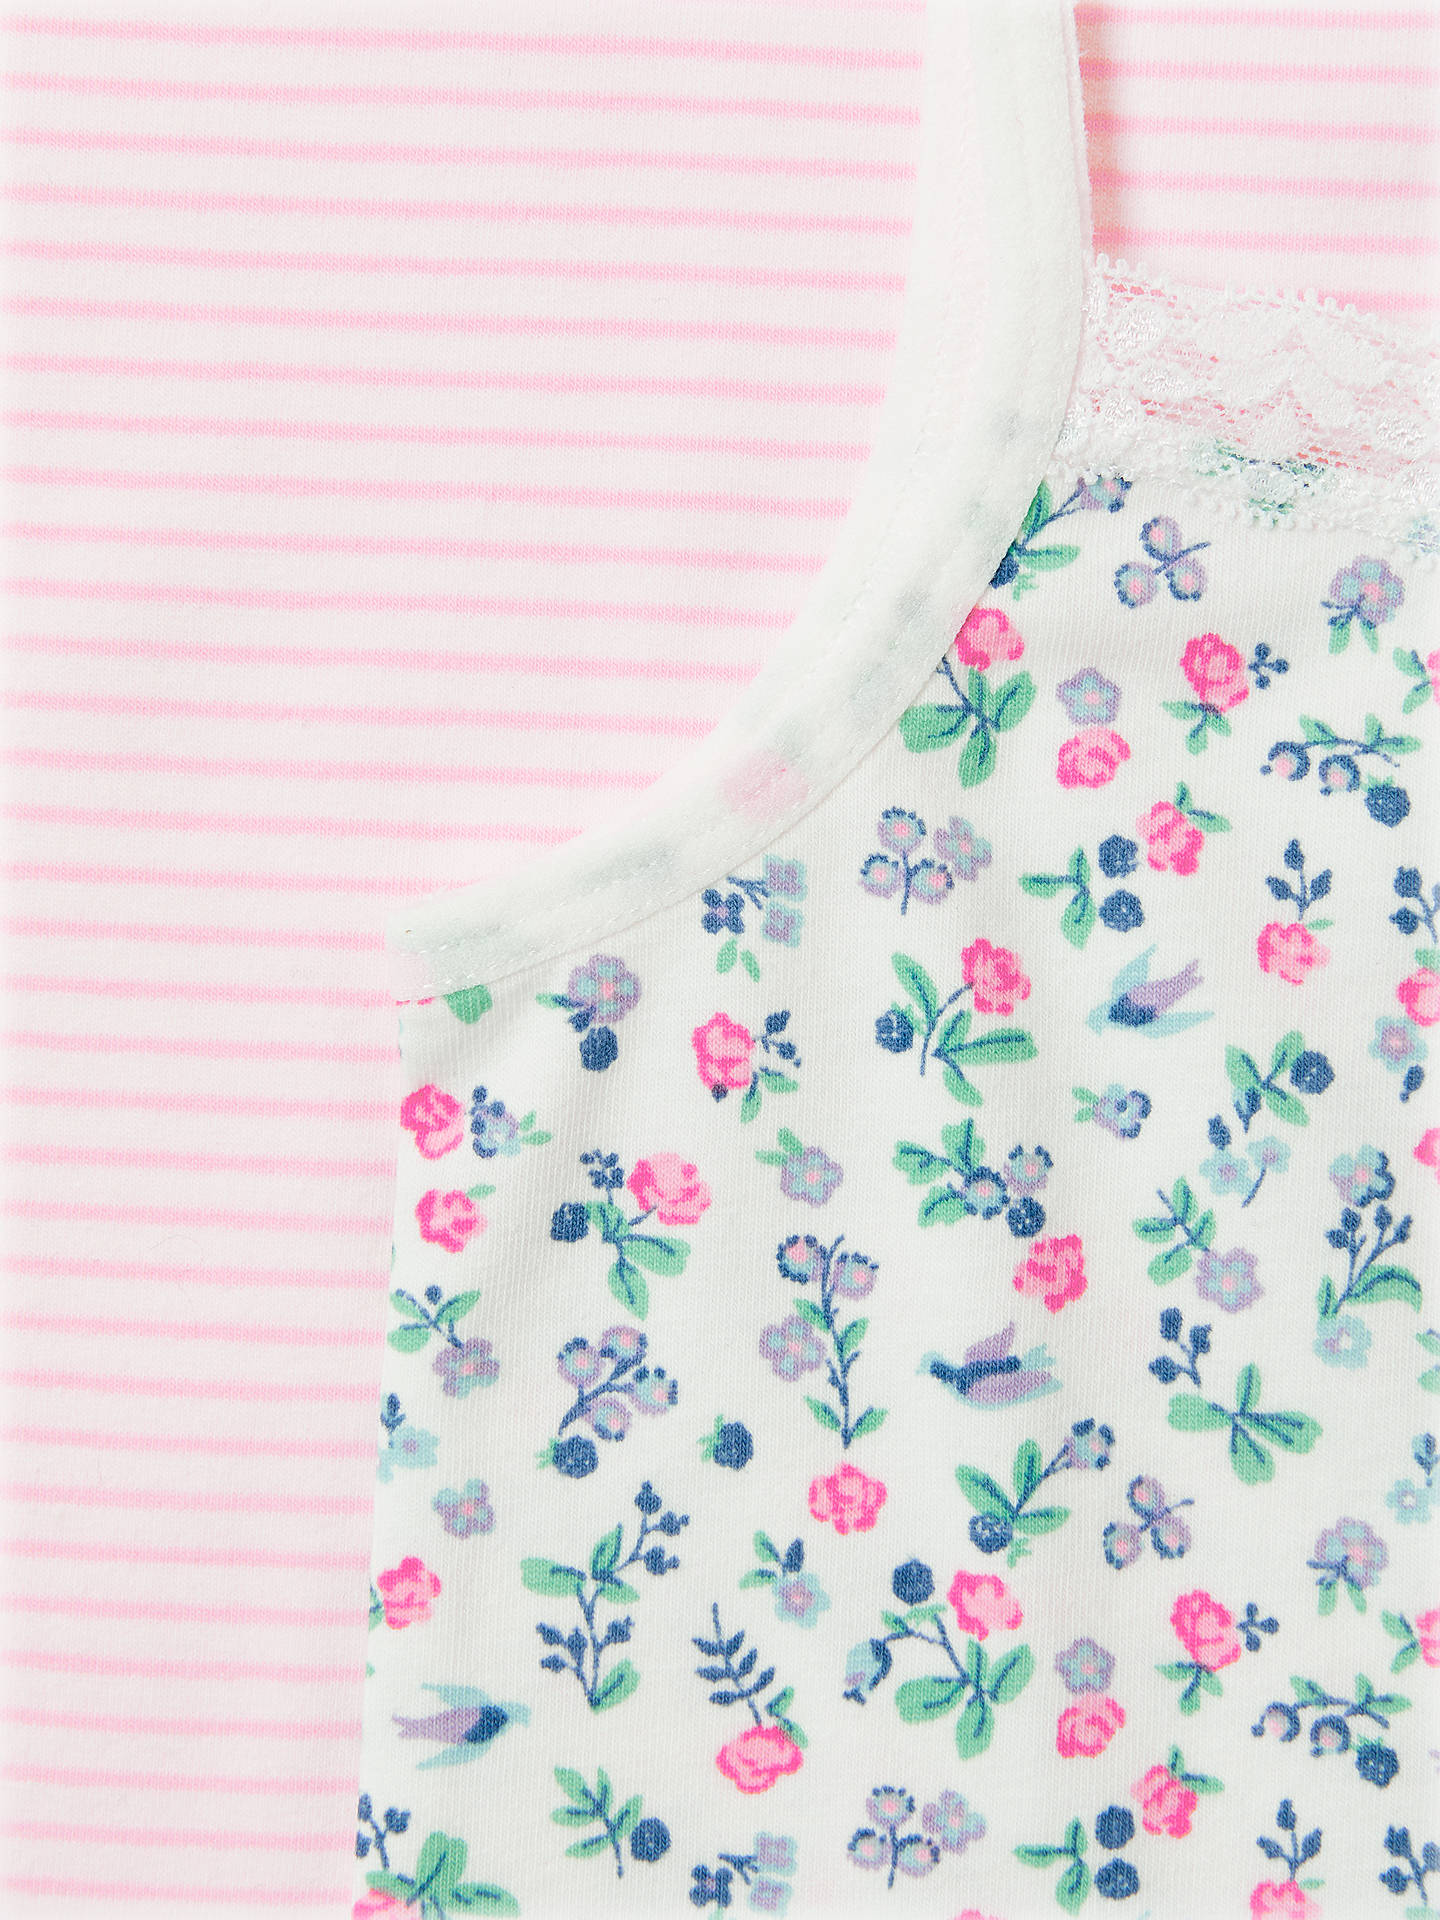 BuyJohn Lewis & Partners Girls' Floral Berry Print Vests, Pack of 2, Multi, 2 years Online at johnlewis.com